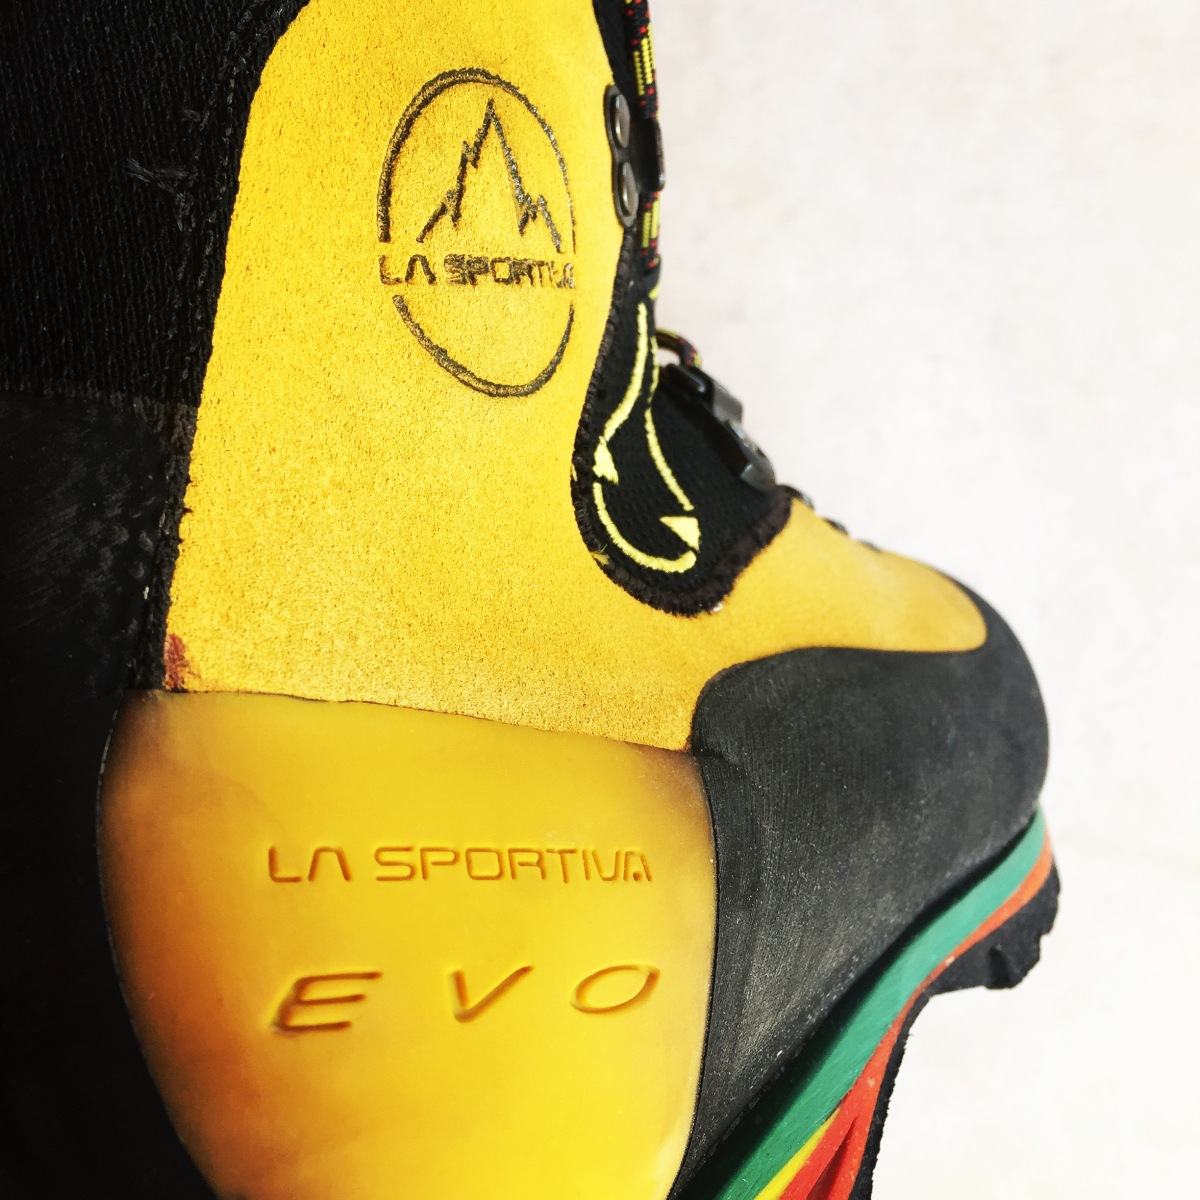 La Sportiva Nepal Evo GTX Mountaineering Boot Review